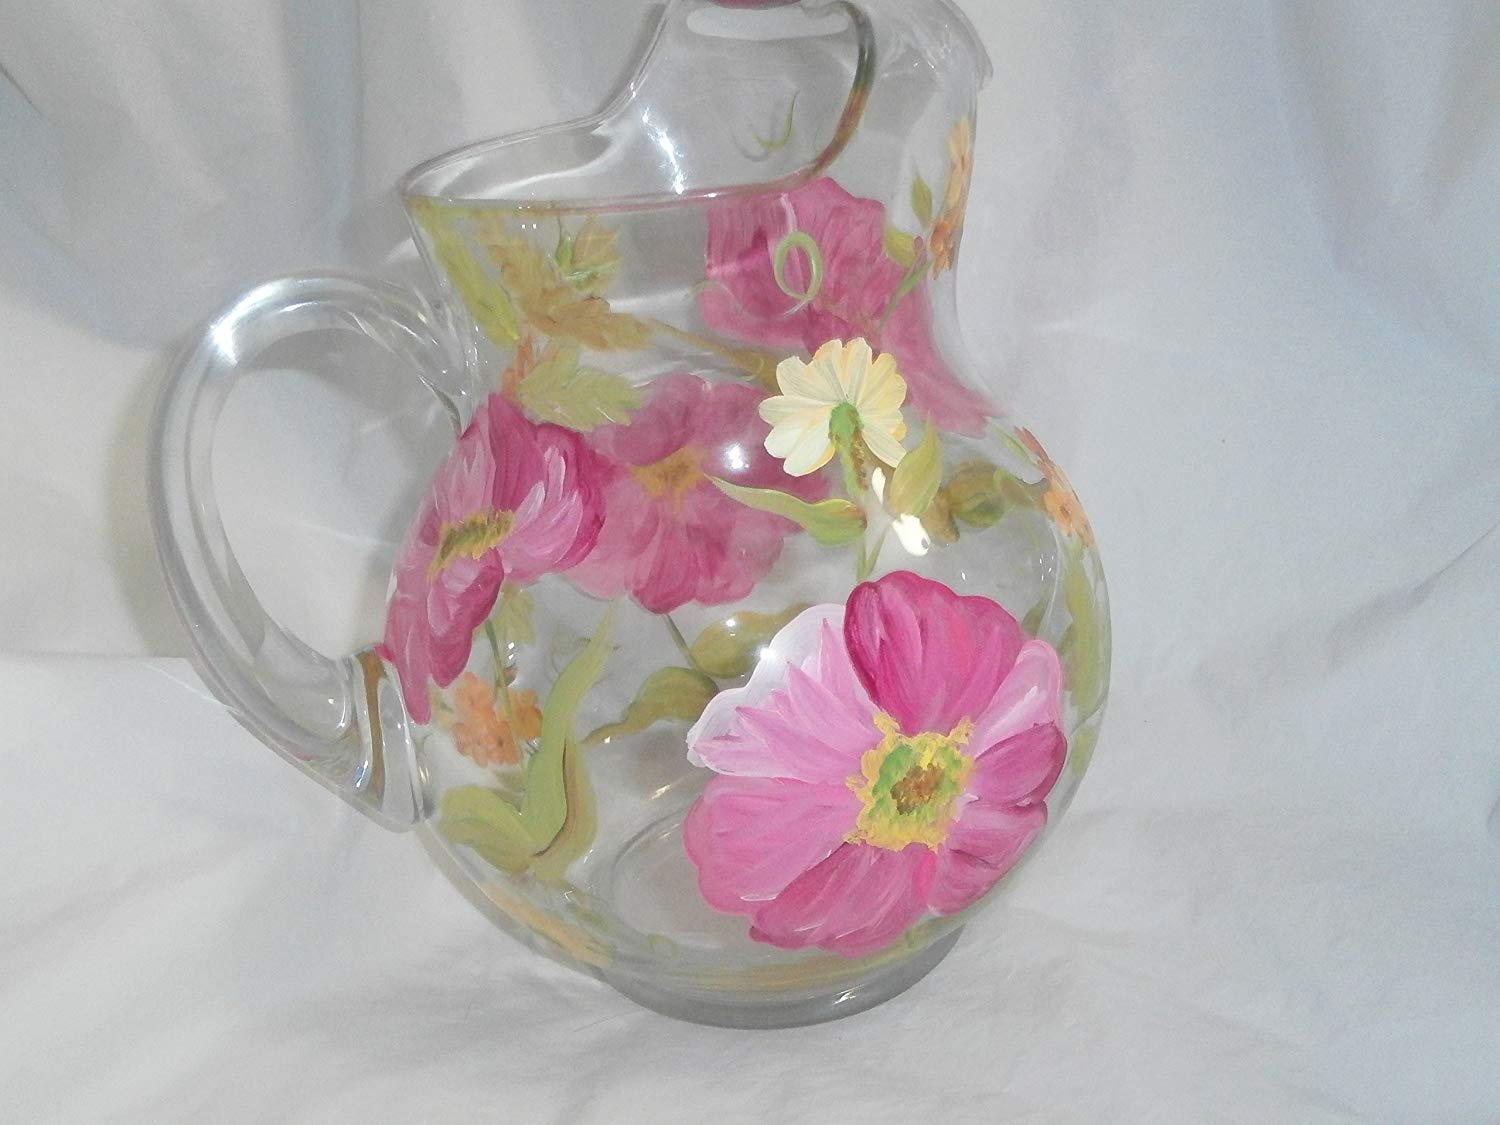 Hand painted pink poppies. Accented with orange and yellow posies. Round 66 ounce pitcher. Soft and romantic. usa